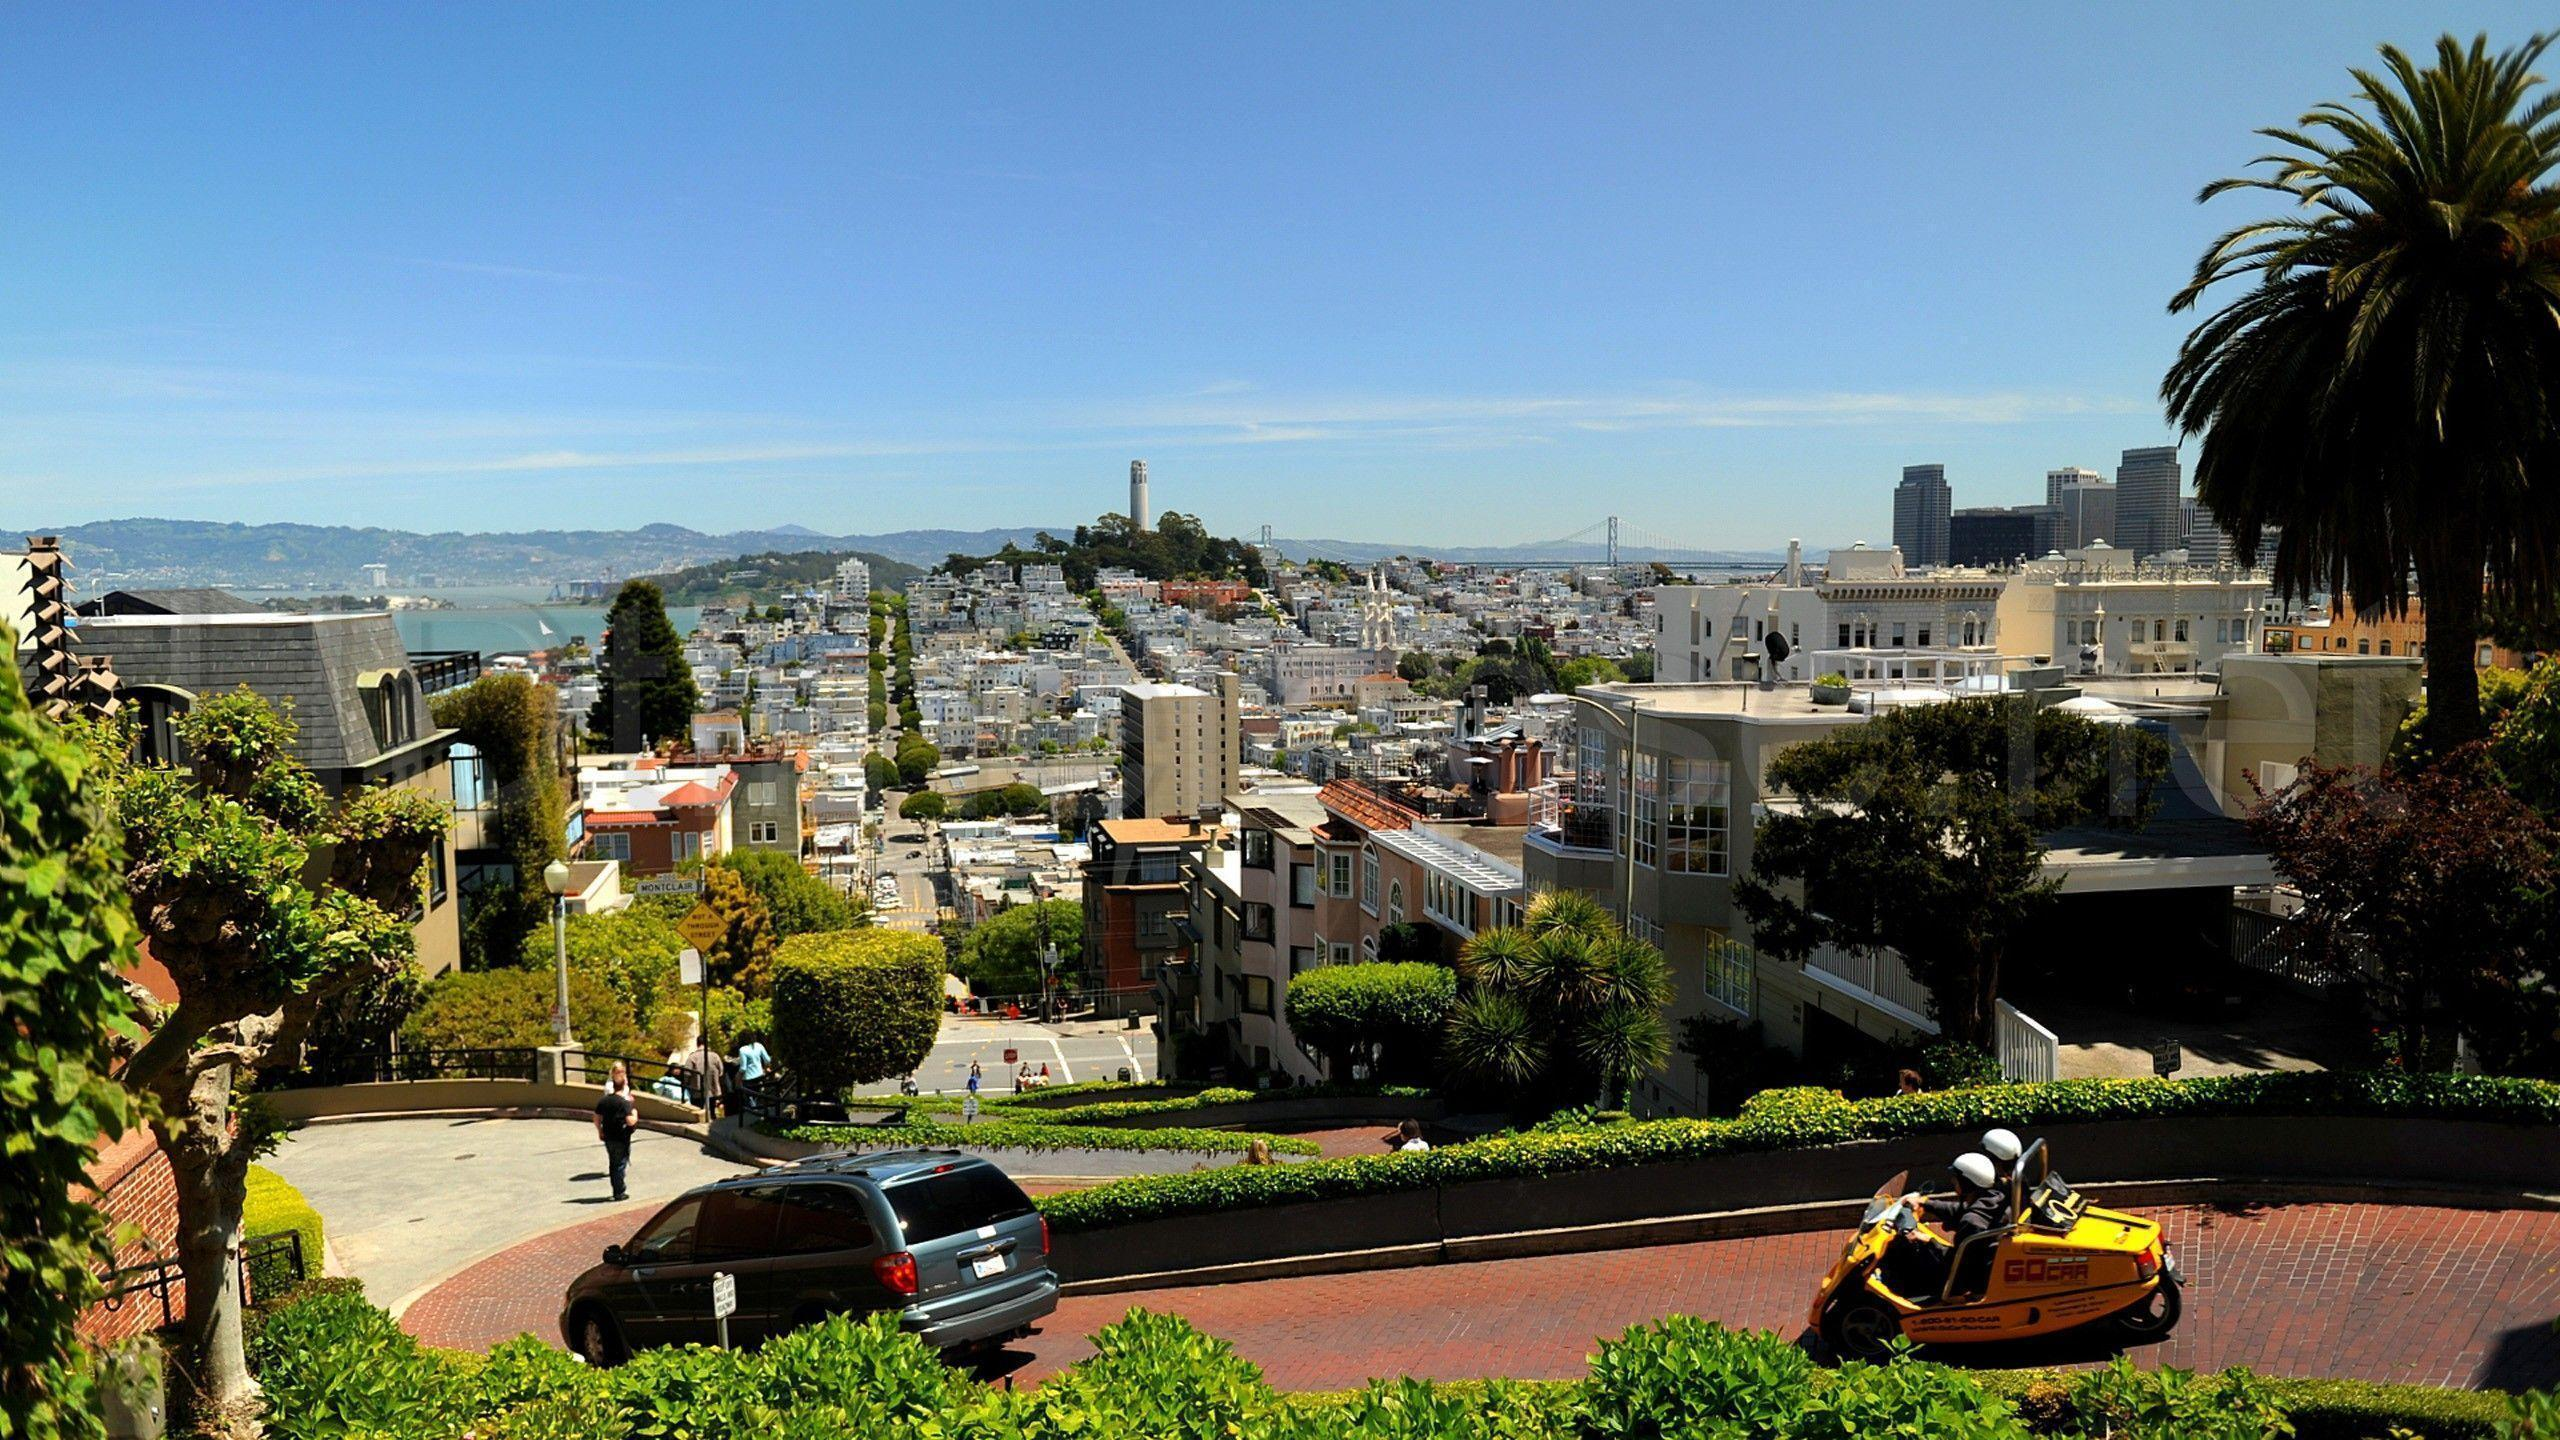 The Images of Streets Architecture San Francisco 2560x1440 HD ...